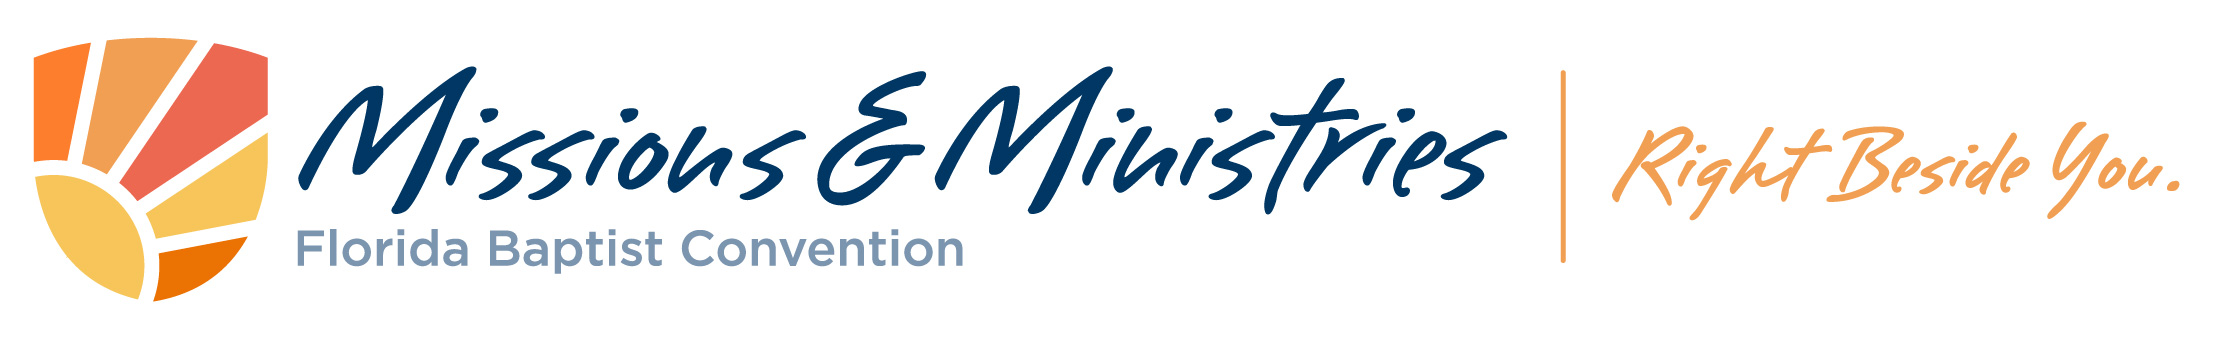 Florida Baptist Convention, Missions and Ministries